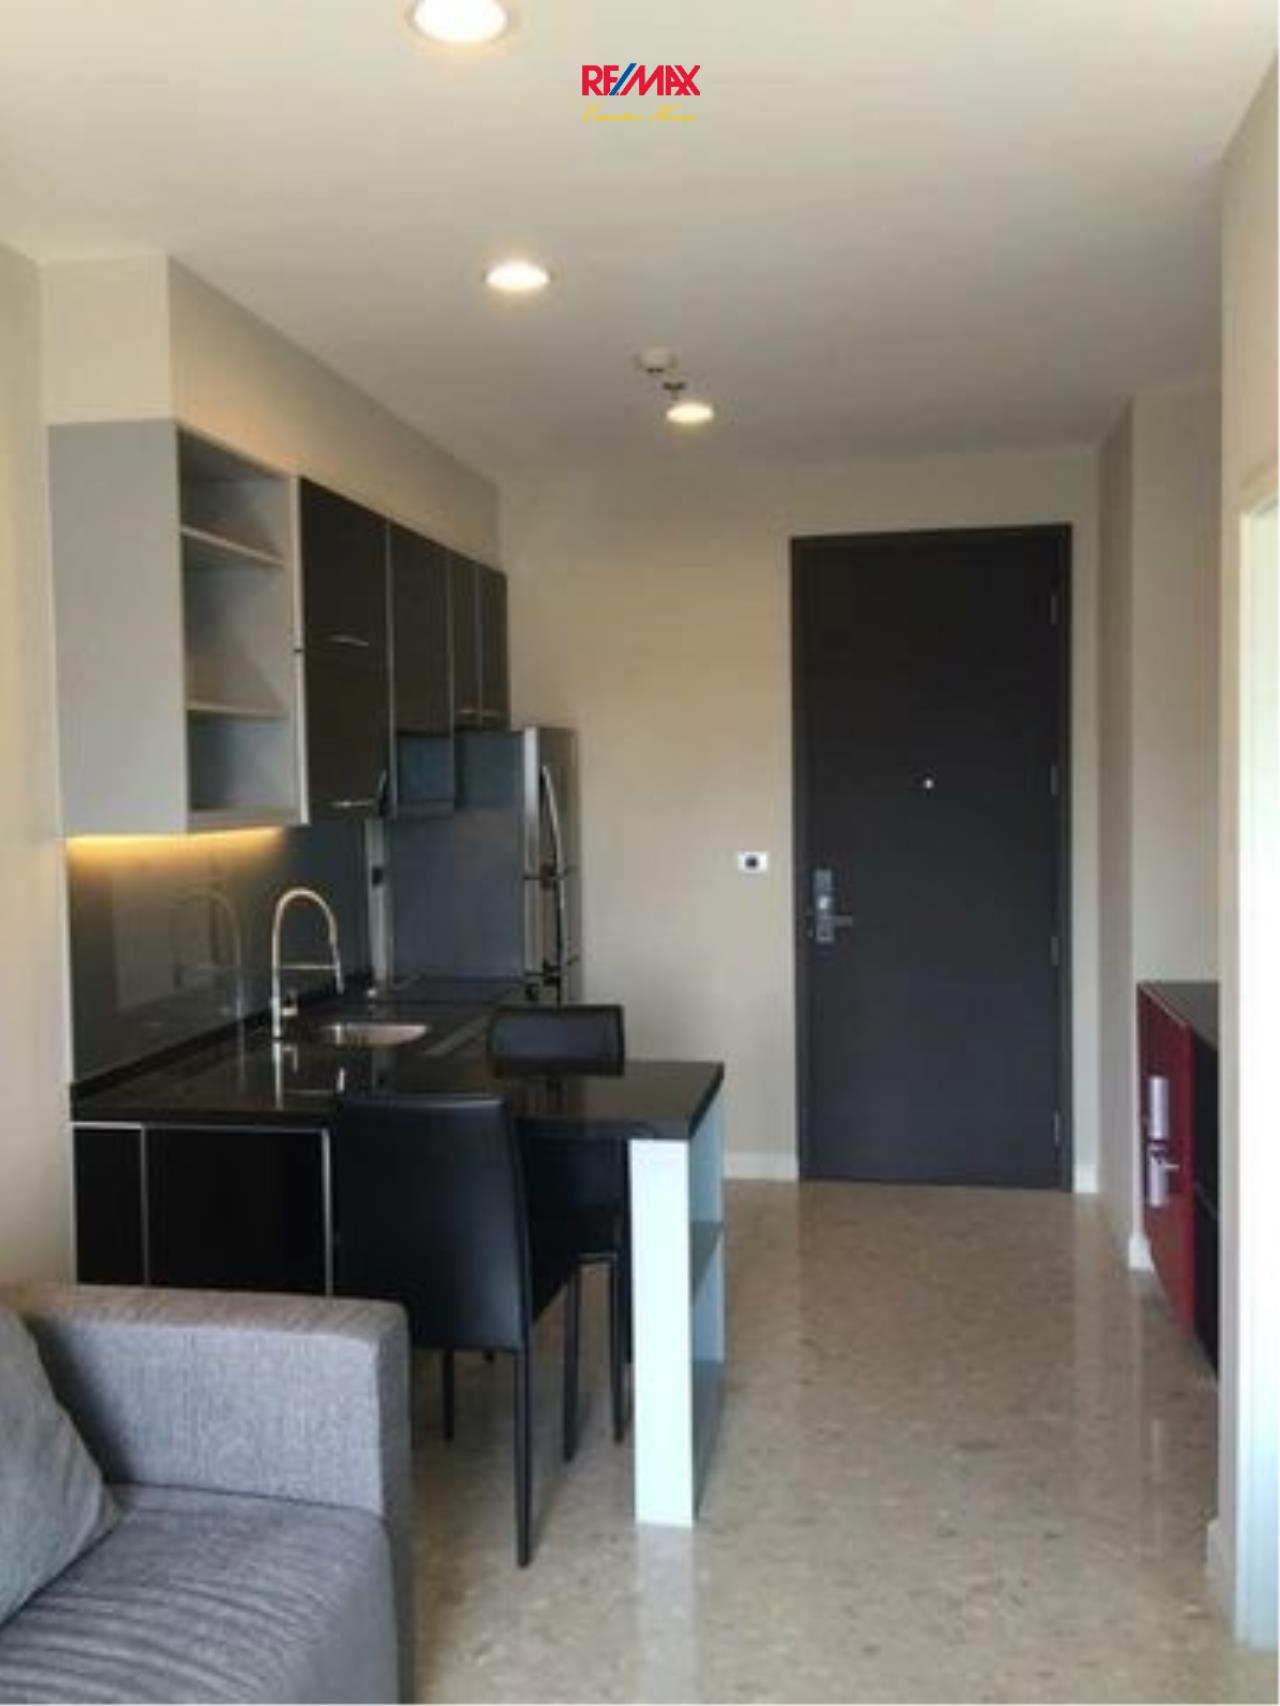 RE/MAX Executive Homes Agency's Cozy 1 Bedroom for Sale Crest 34 2